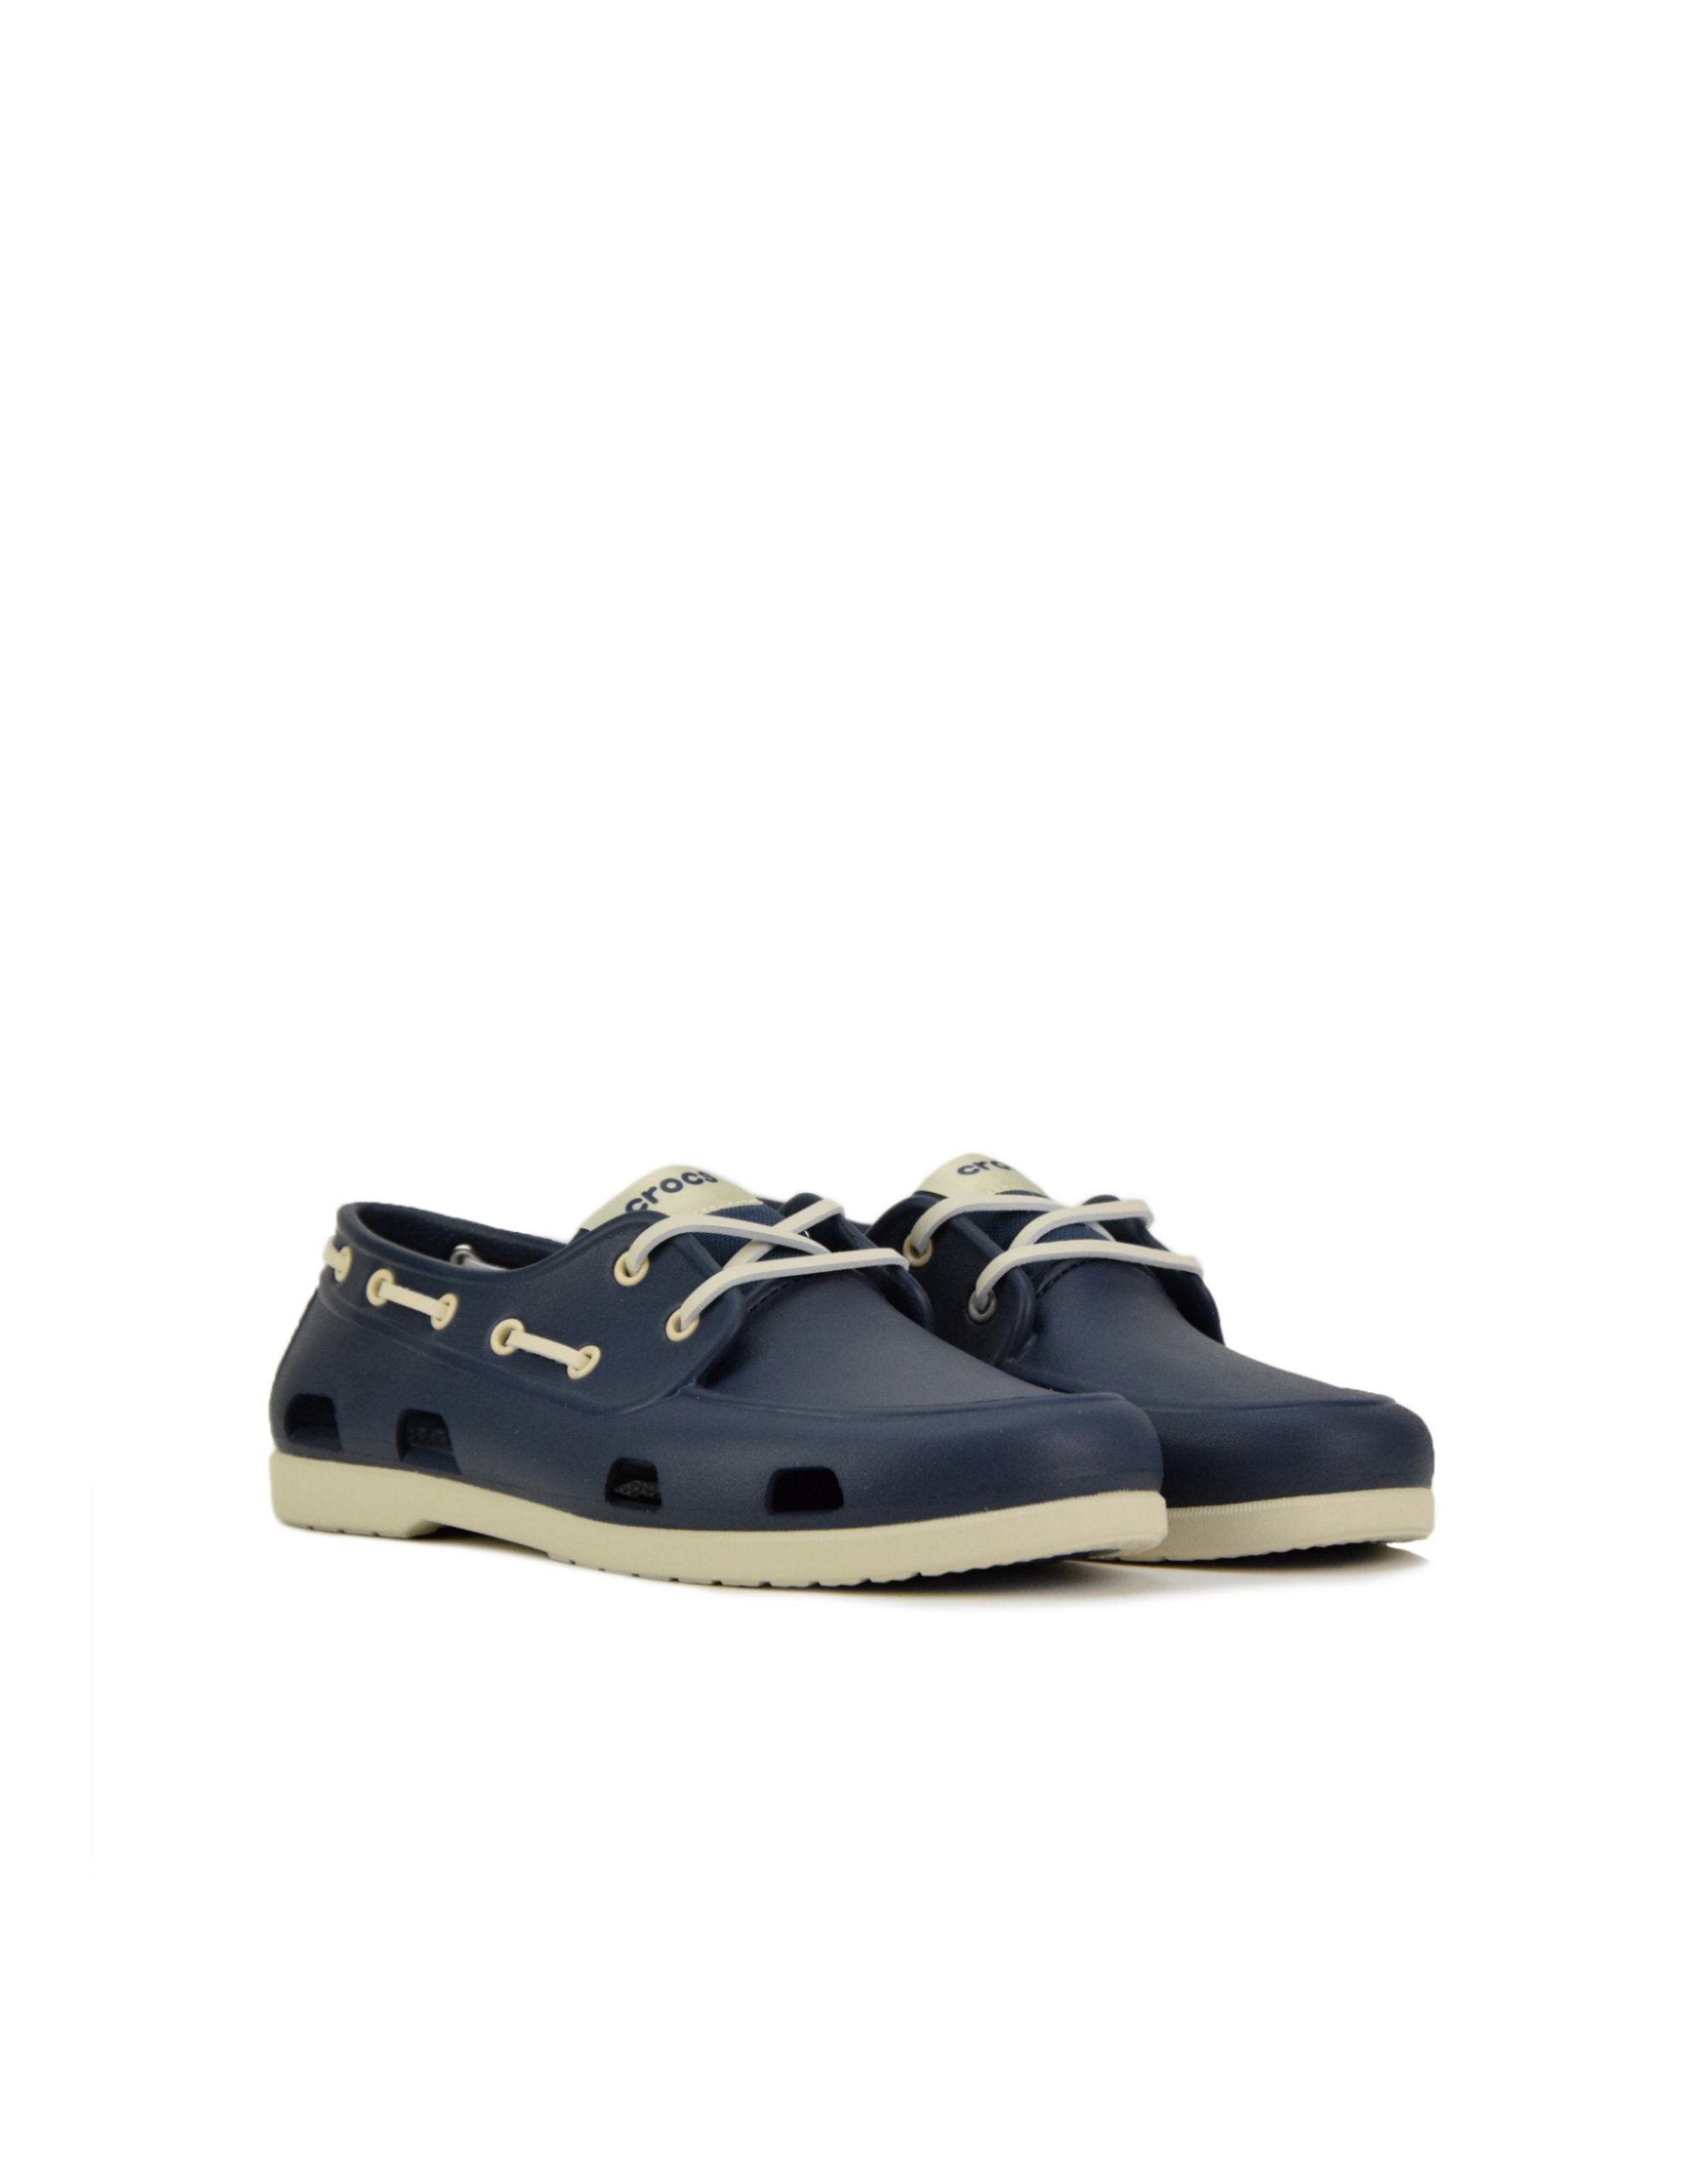 Crocs Classic Boat Shoe (206338-46K) Navy/Stucco